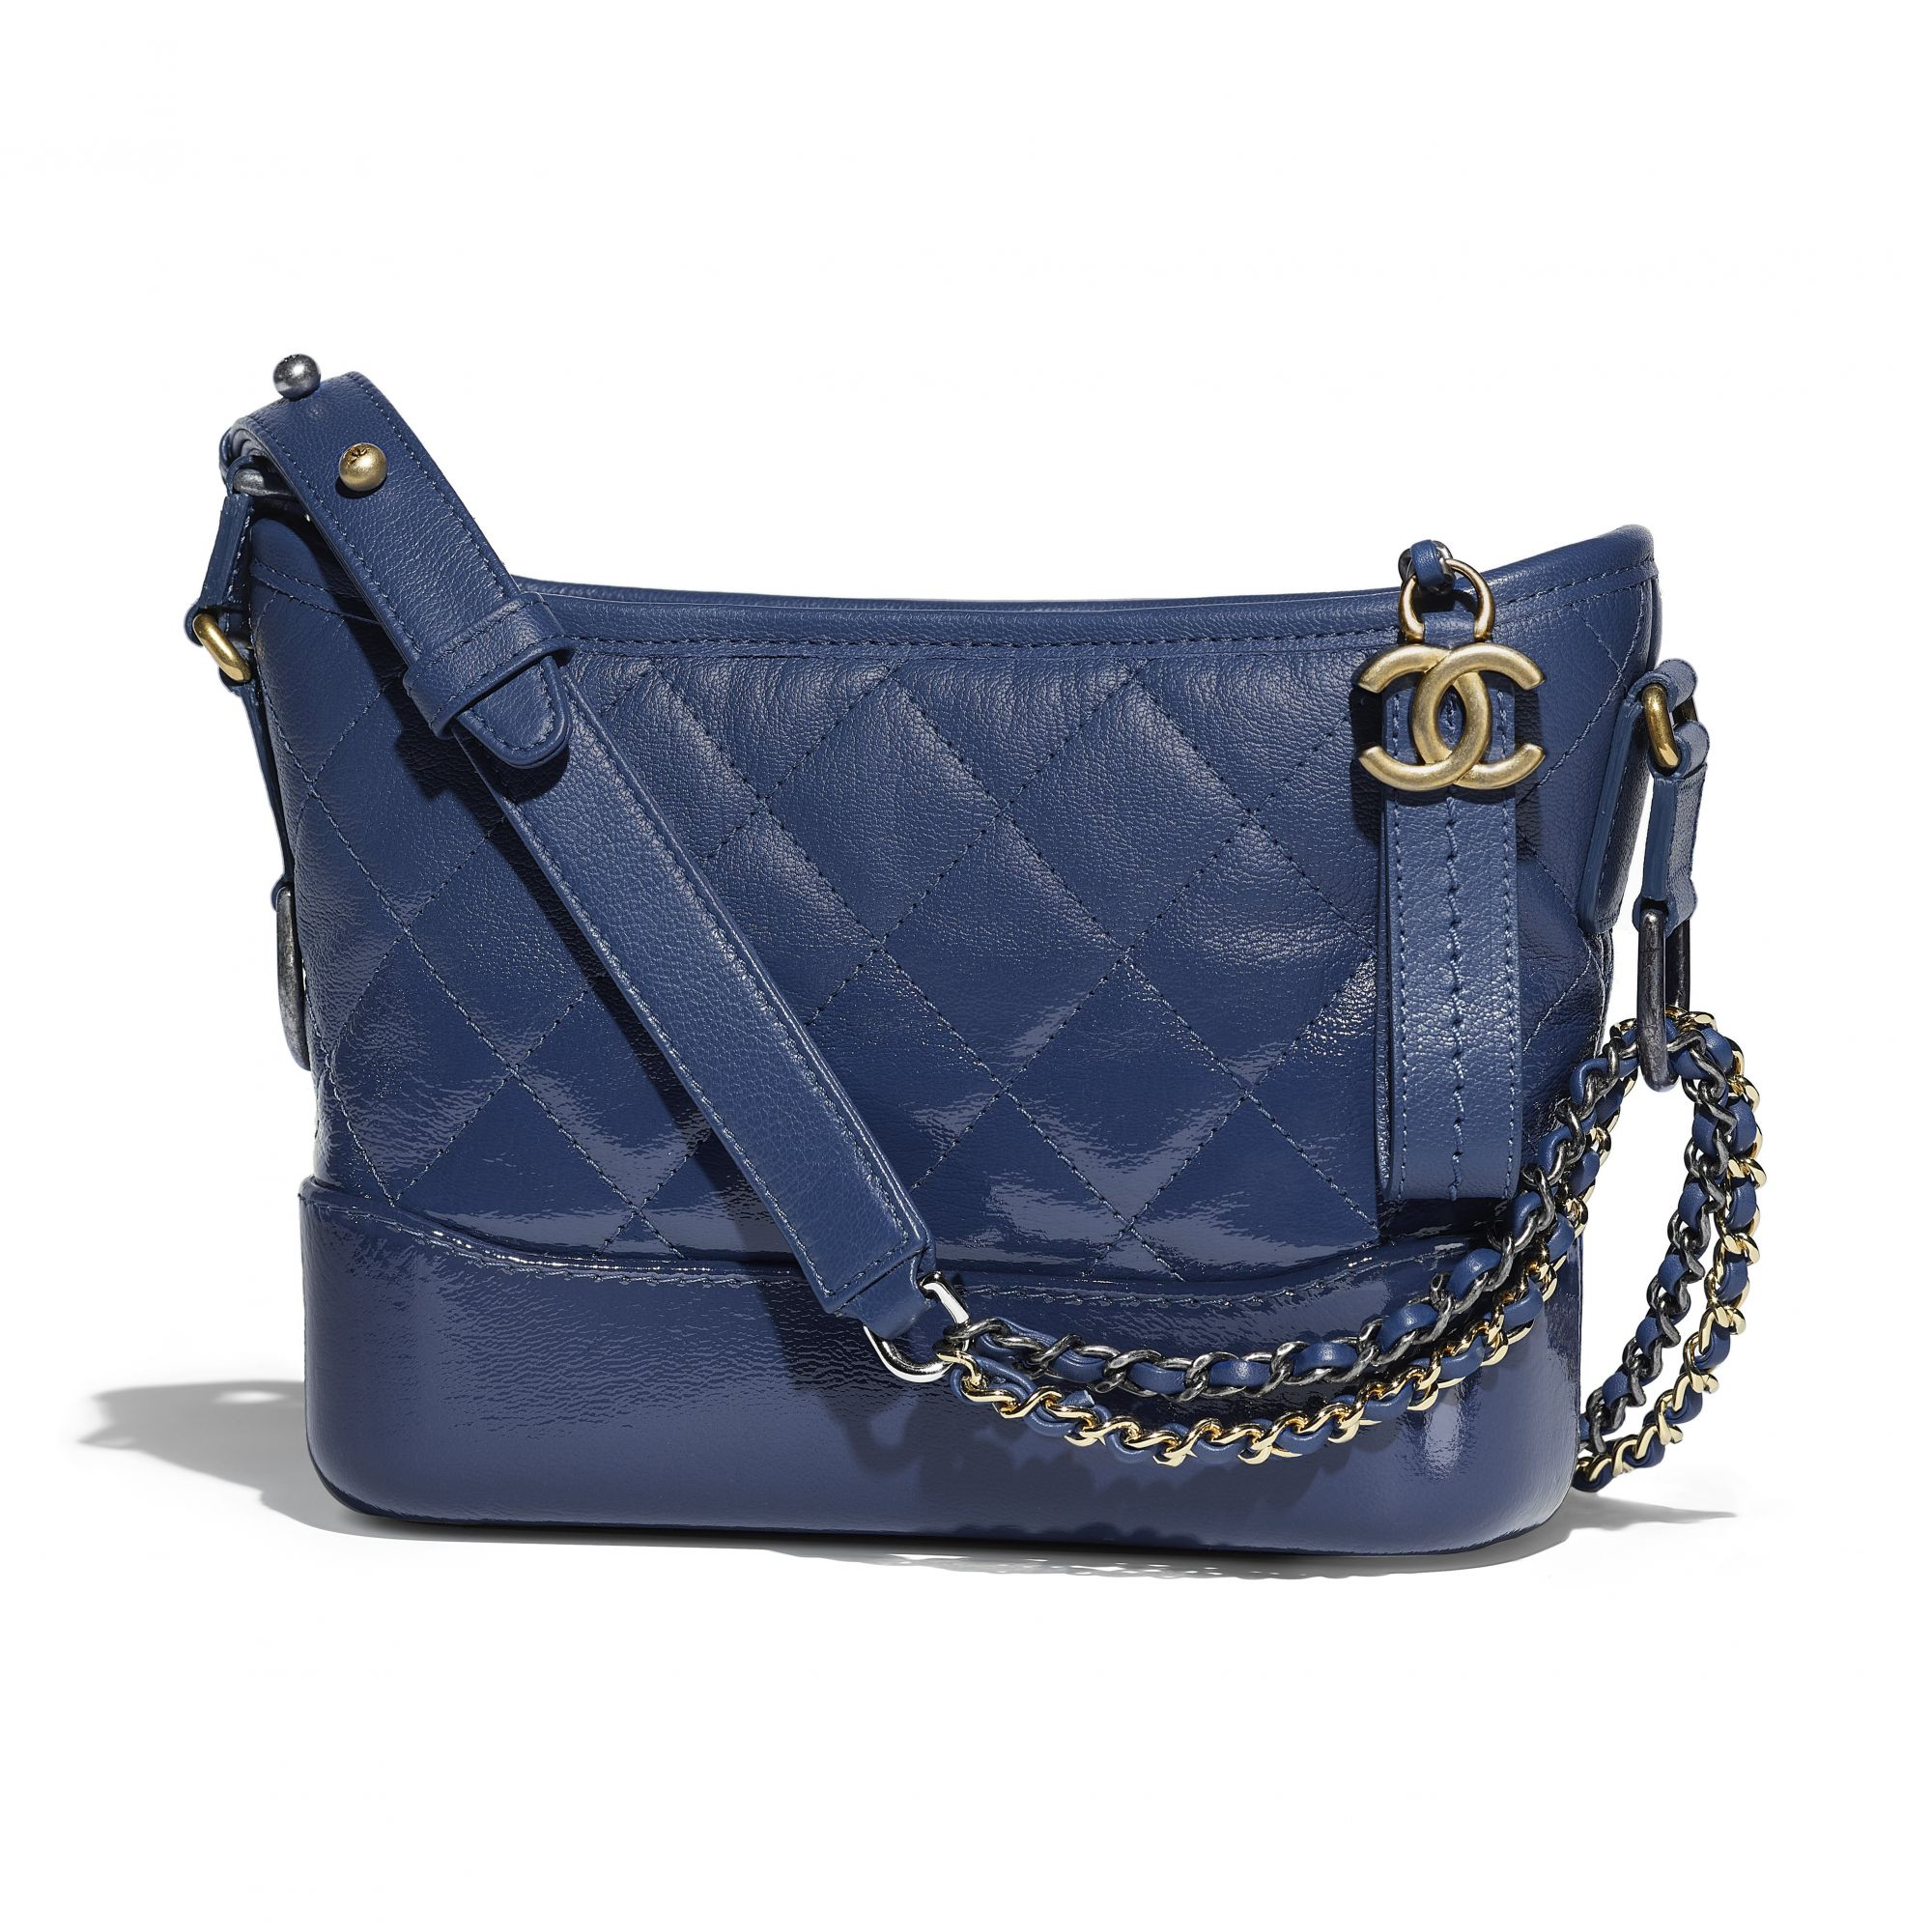 Blue Chanel Gabrielle bag in leather